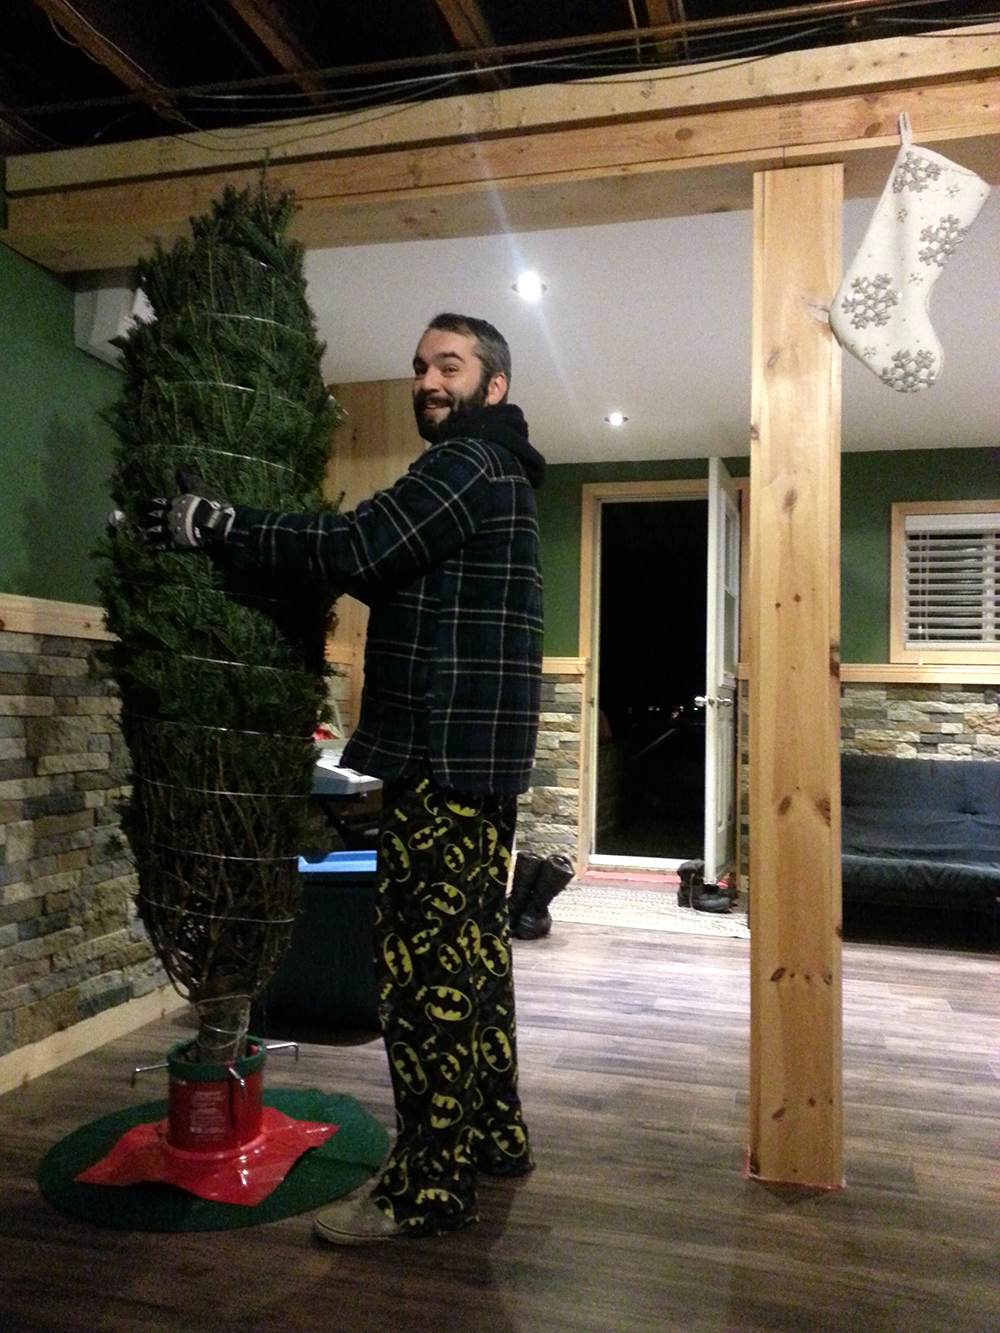 Last but not least, our very first real Christmas tree in progress!